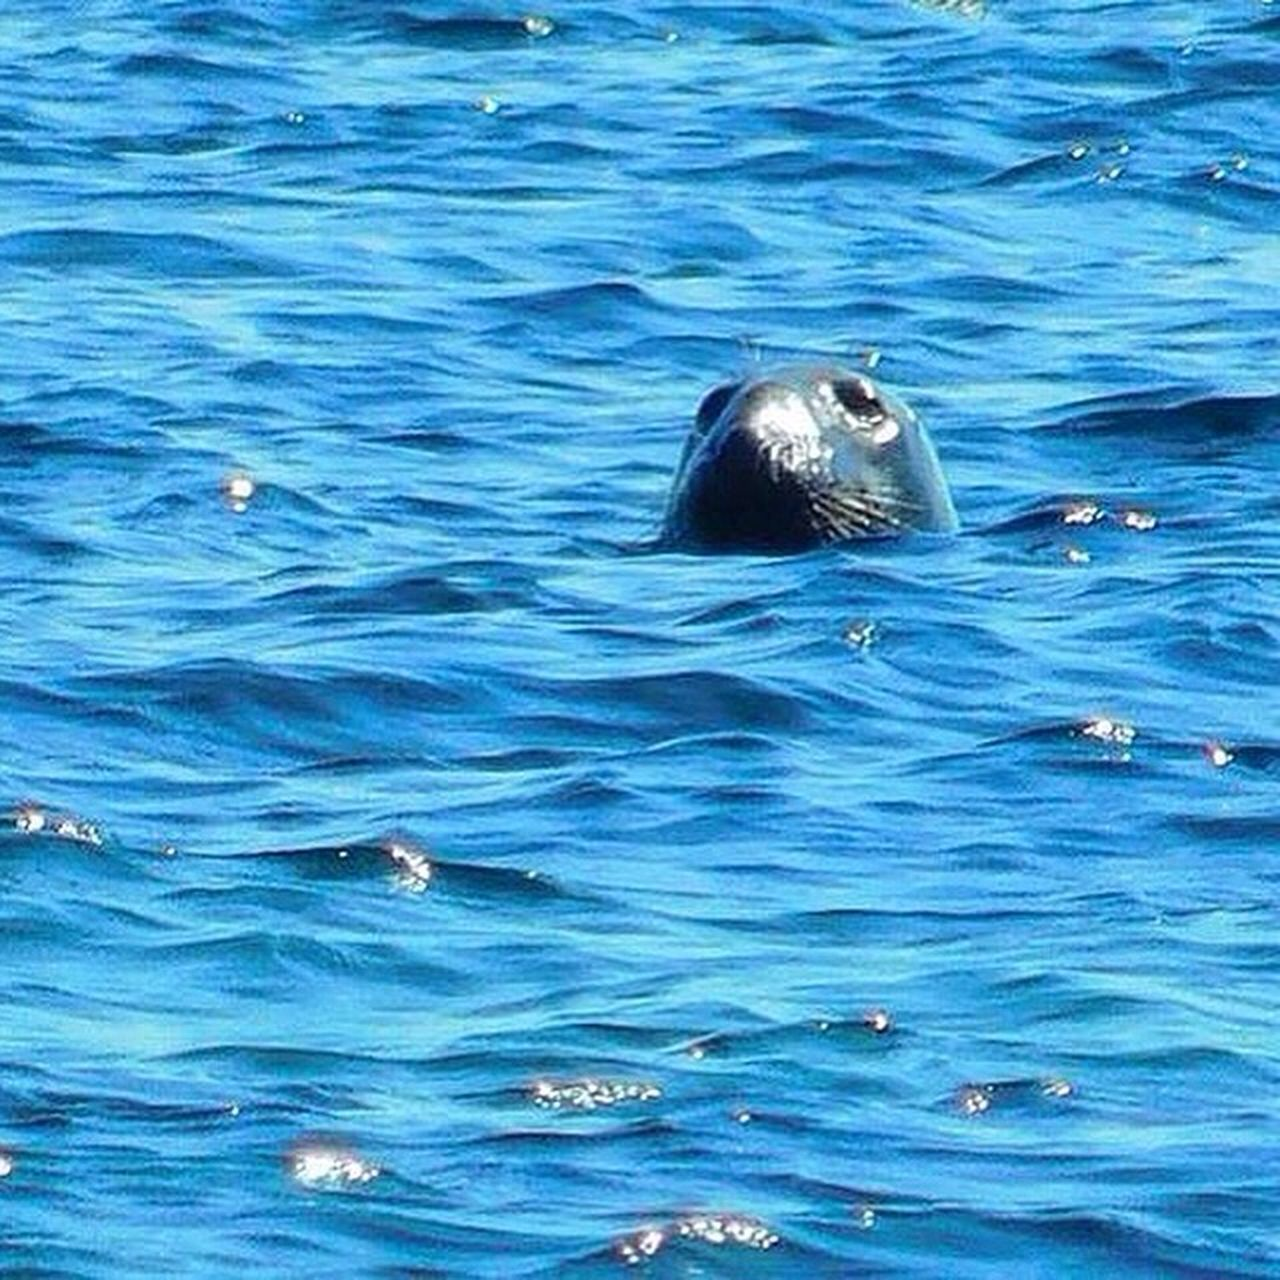 I was lucky enough to come across a bunch of seals ... Seals Wildlife & Nature Wildlife Seaside New England  Outdoor Pictures July Showcase July 2016 EyeEm Nature Lover Streamzoofamily Sealife Outside Photography Massachusetts Nature_collection